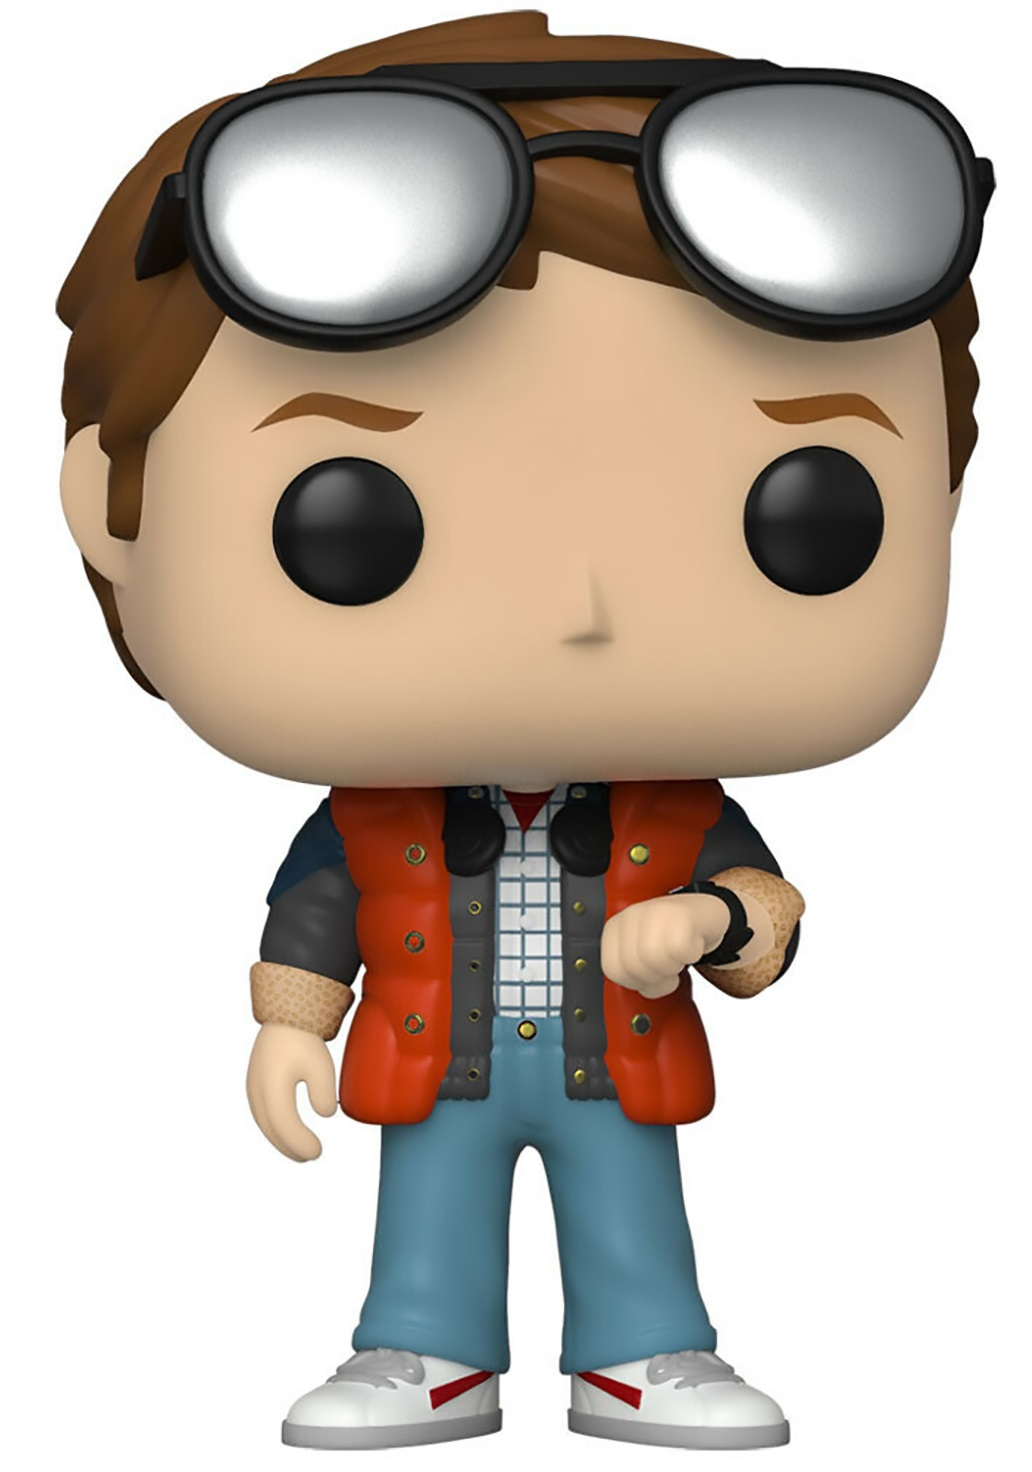 Funko Коллекционная фигурка Funko POP! Vinyl: SDCC: BTTF: Marty checking Watch (Exc) 48907